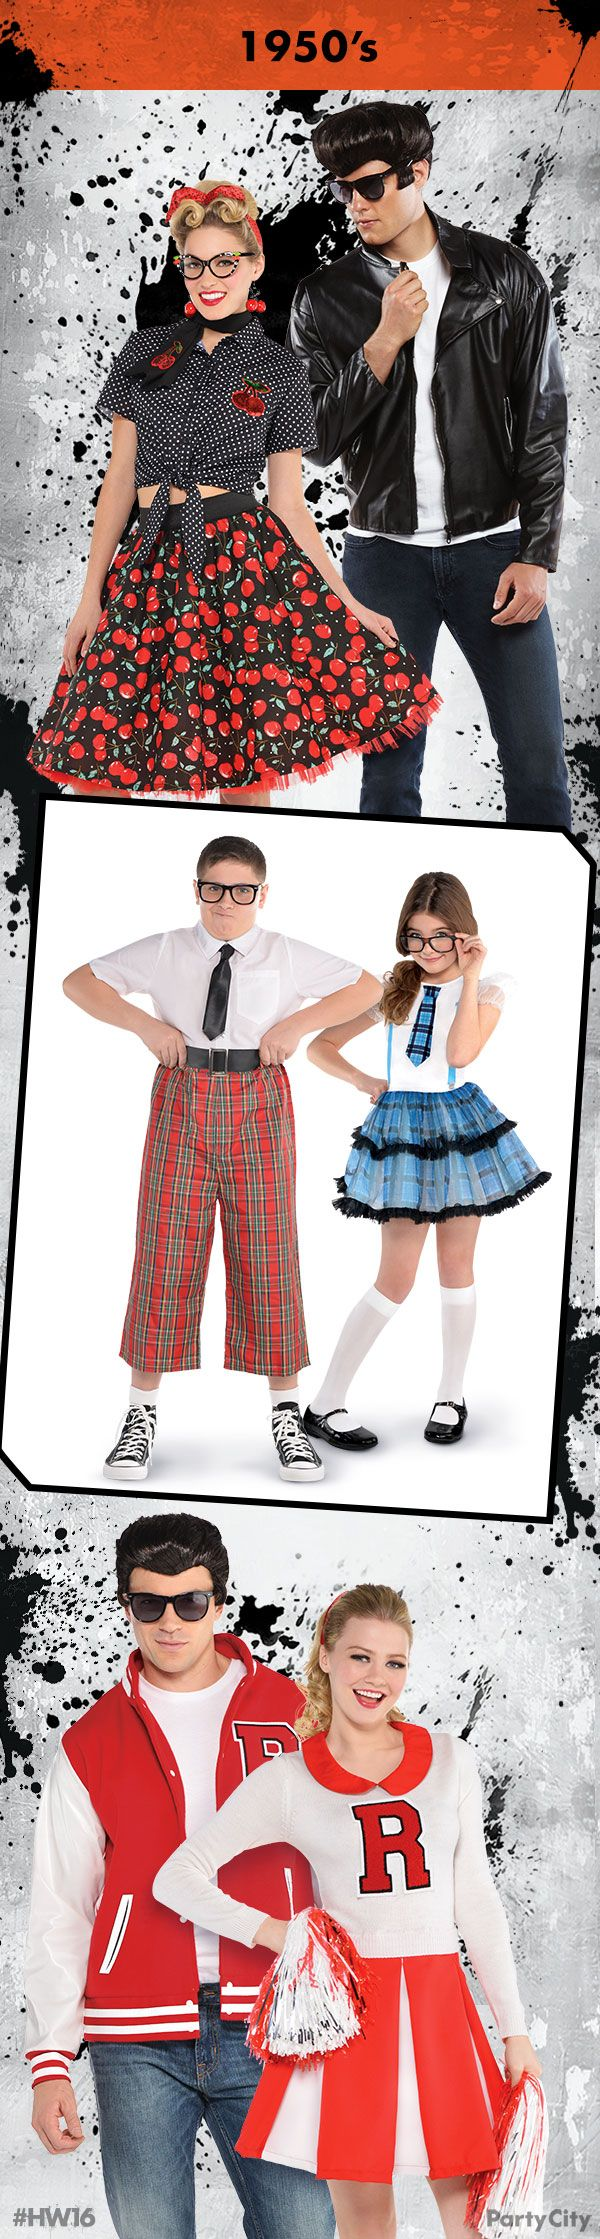 54 best Group/Family Costumes images on Pinterest | Family ...